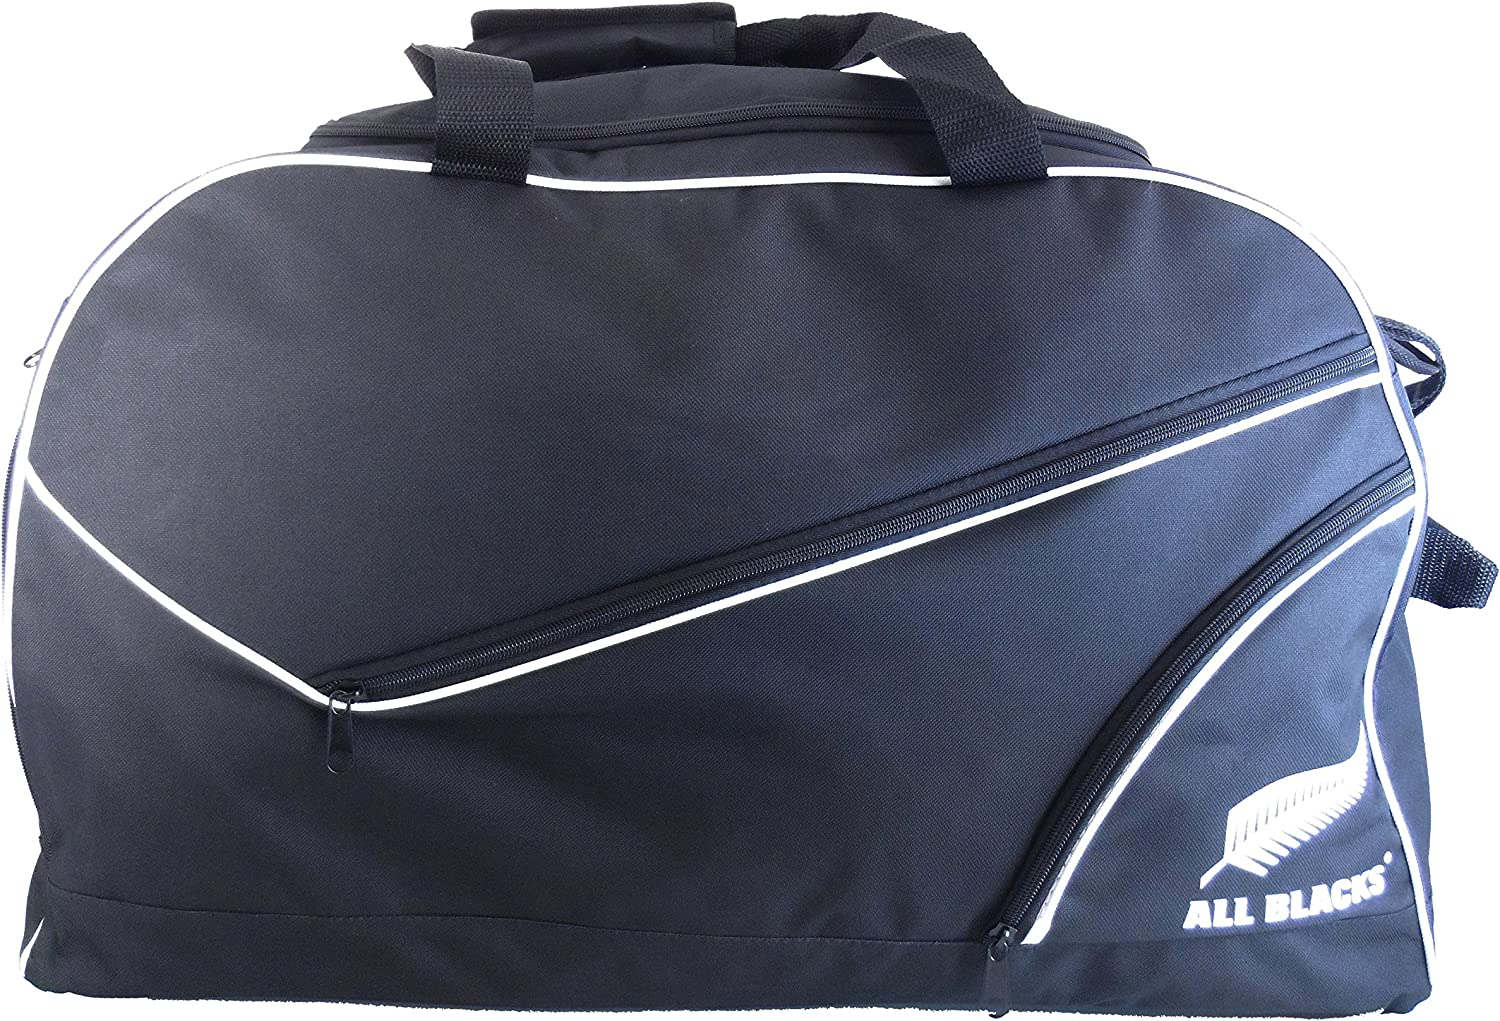 Collection Officielle 60 cm All Blacks Sac de Sport Grand modele Rugby